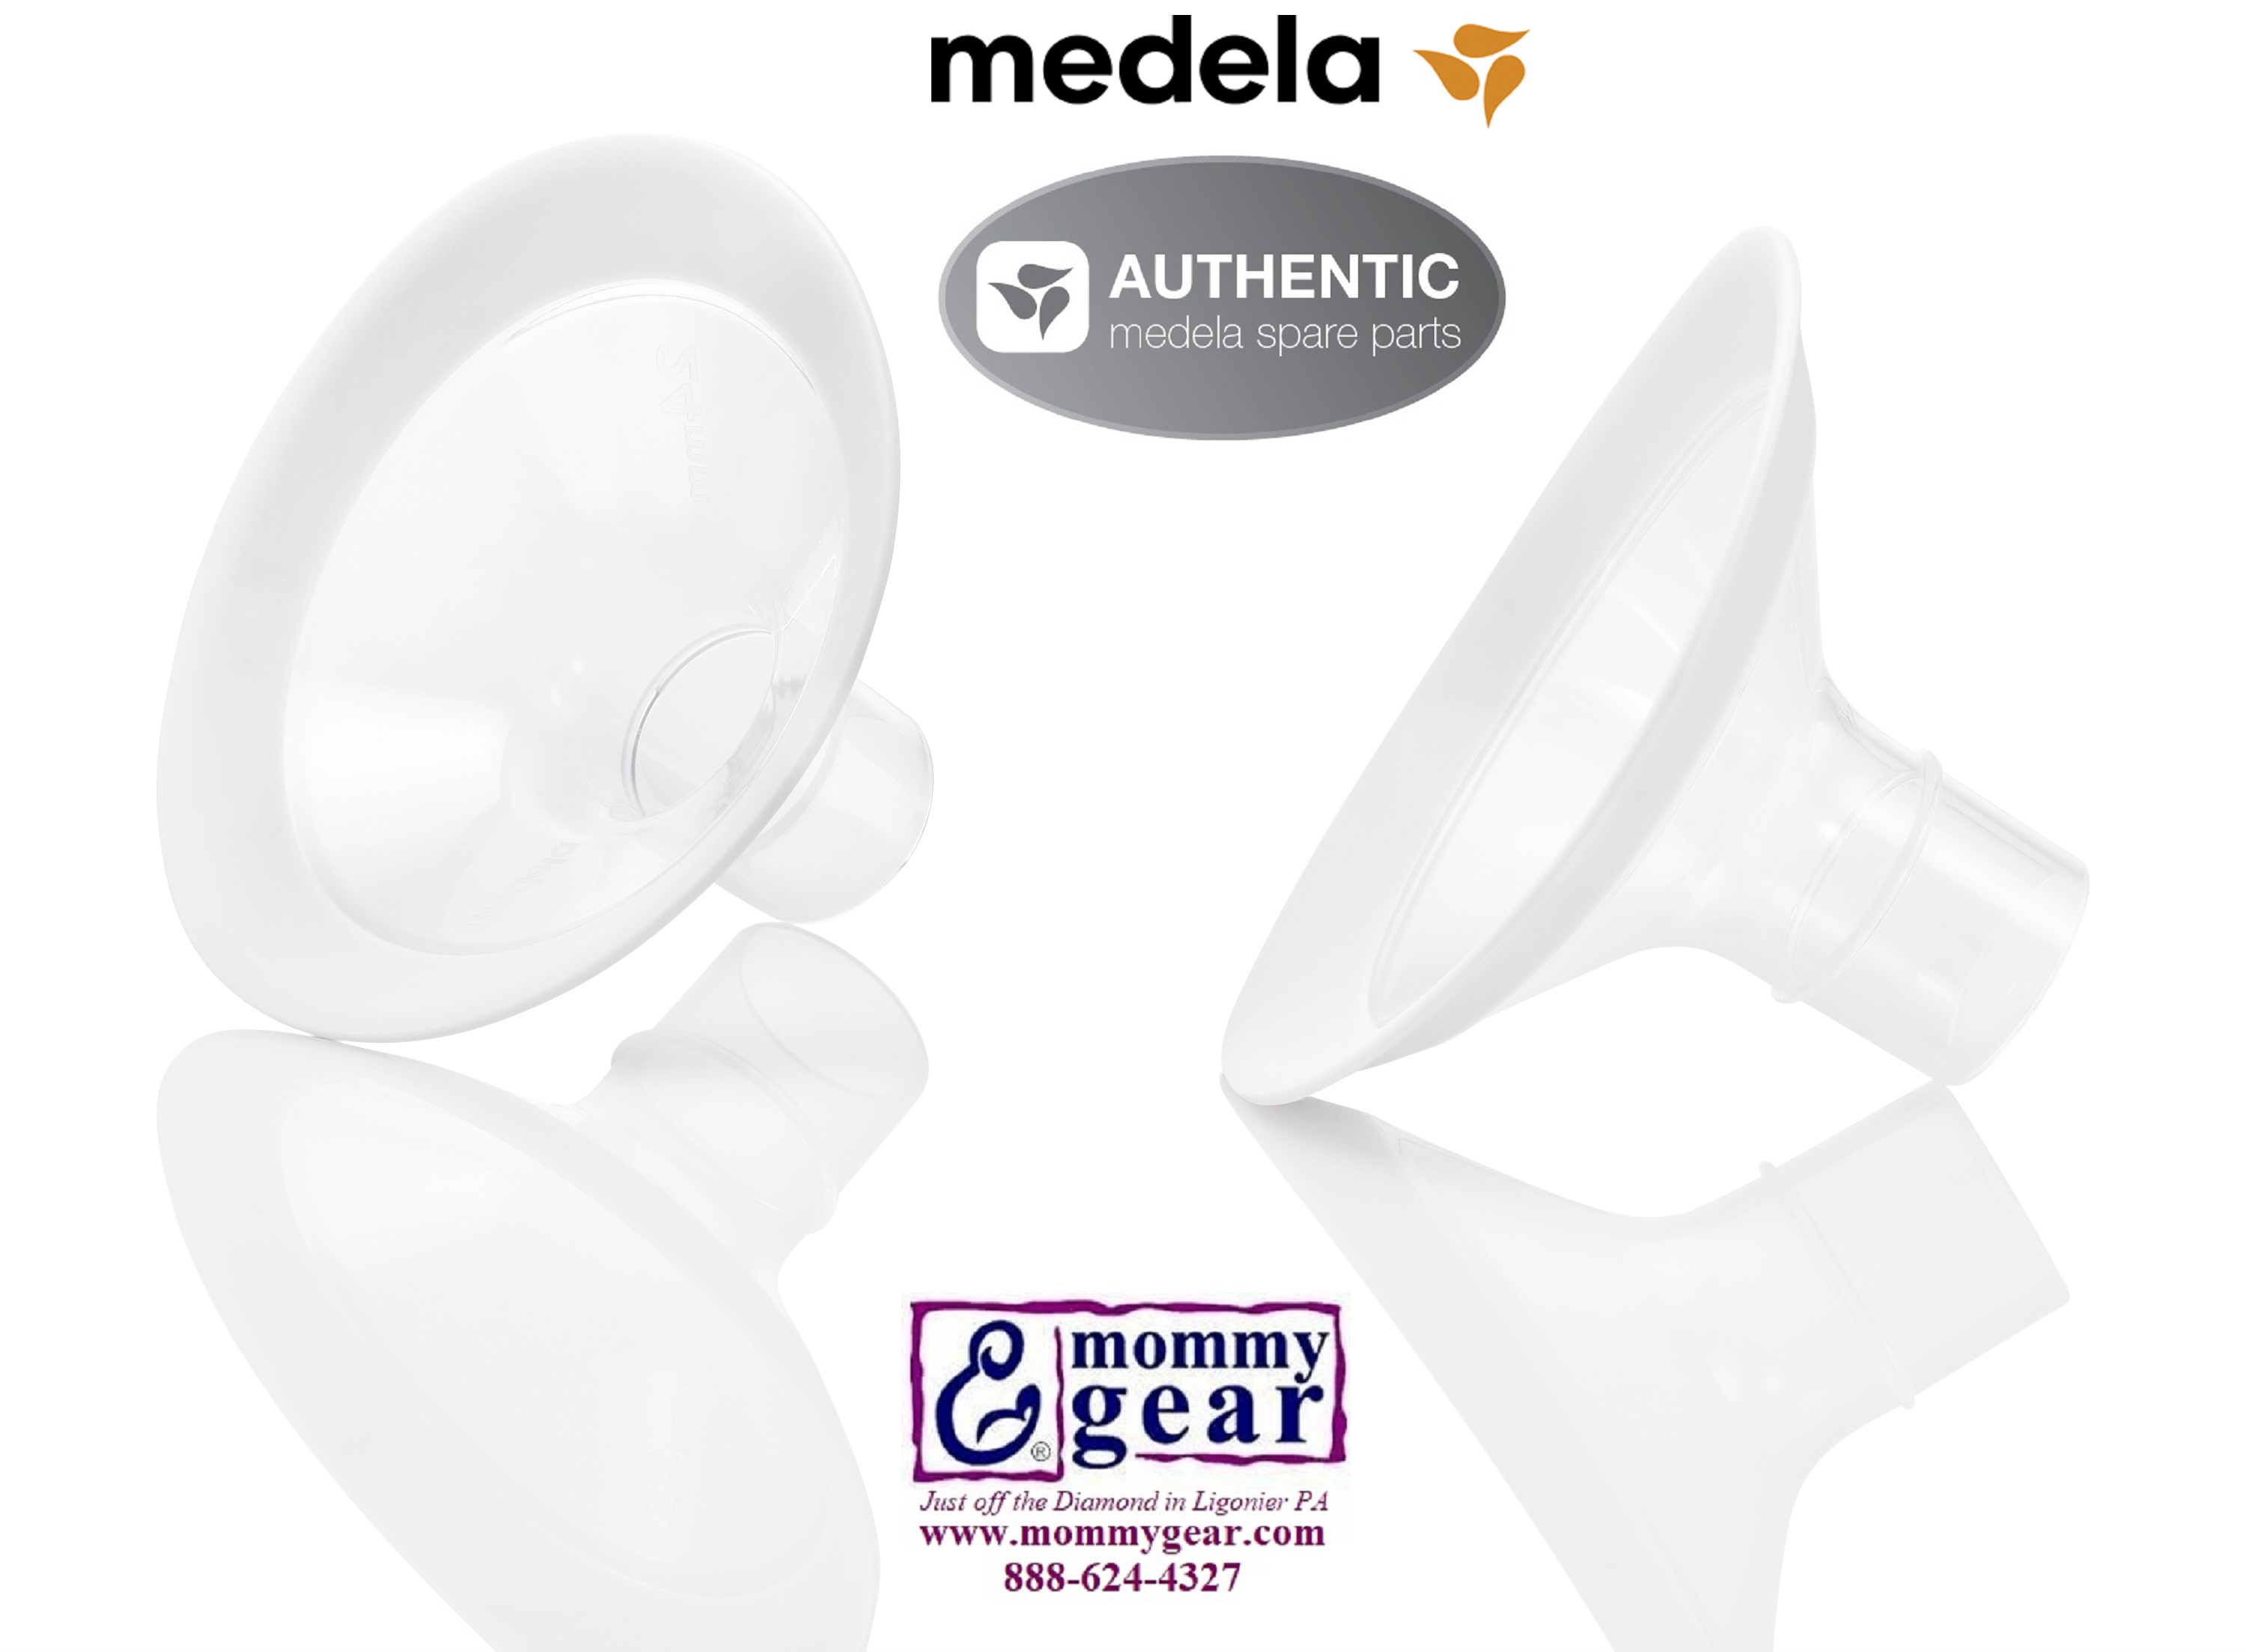 medela-personalfit-flex-breast-shield-2